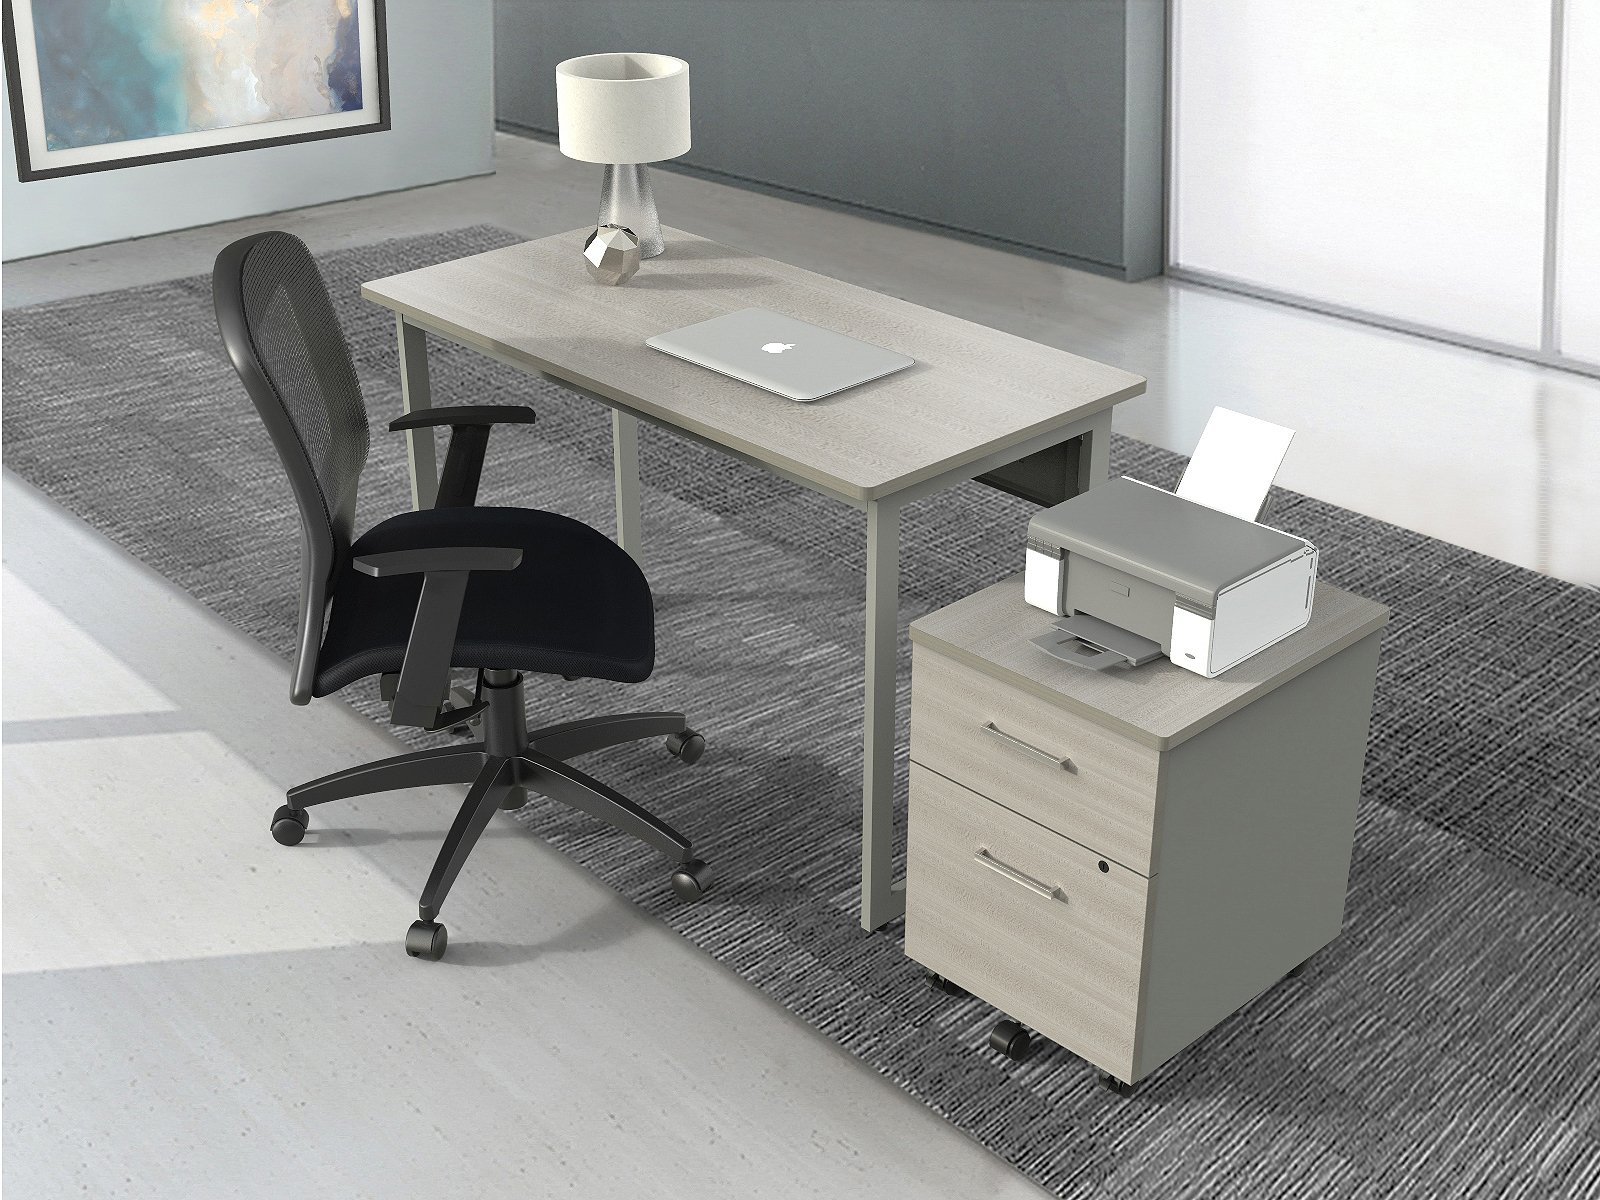 Easy to Assemble Desk for Office - Computer Desk in Grey / Gray Laminate Wood & Steel - Writing table for Students // Modern design // By Linea Italia